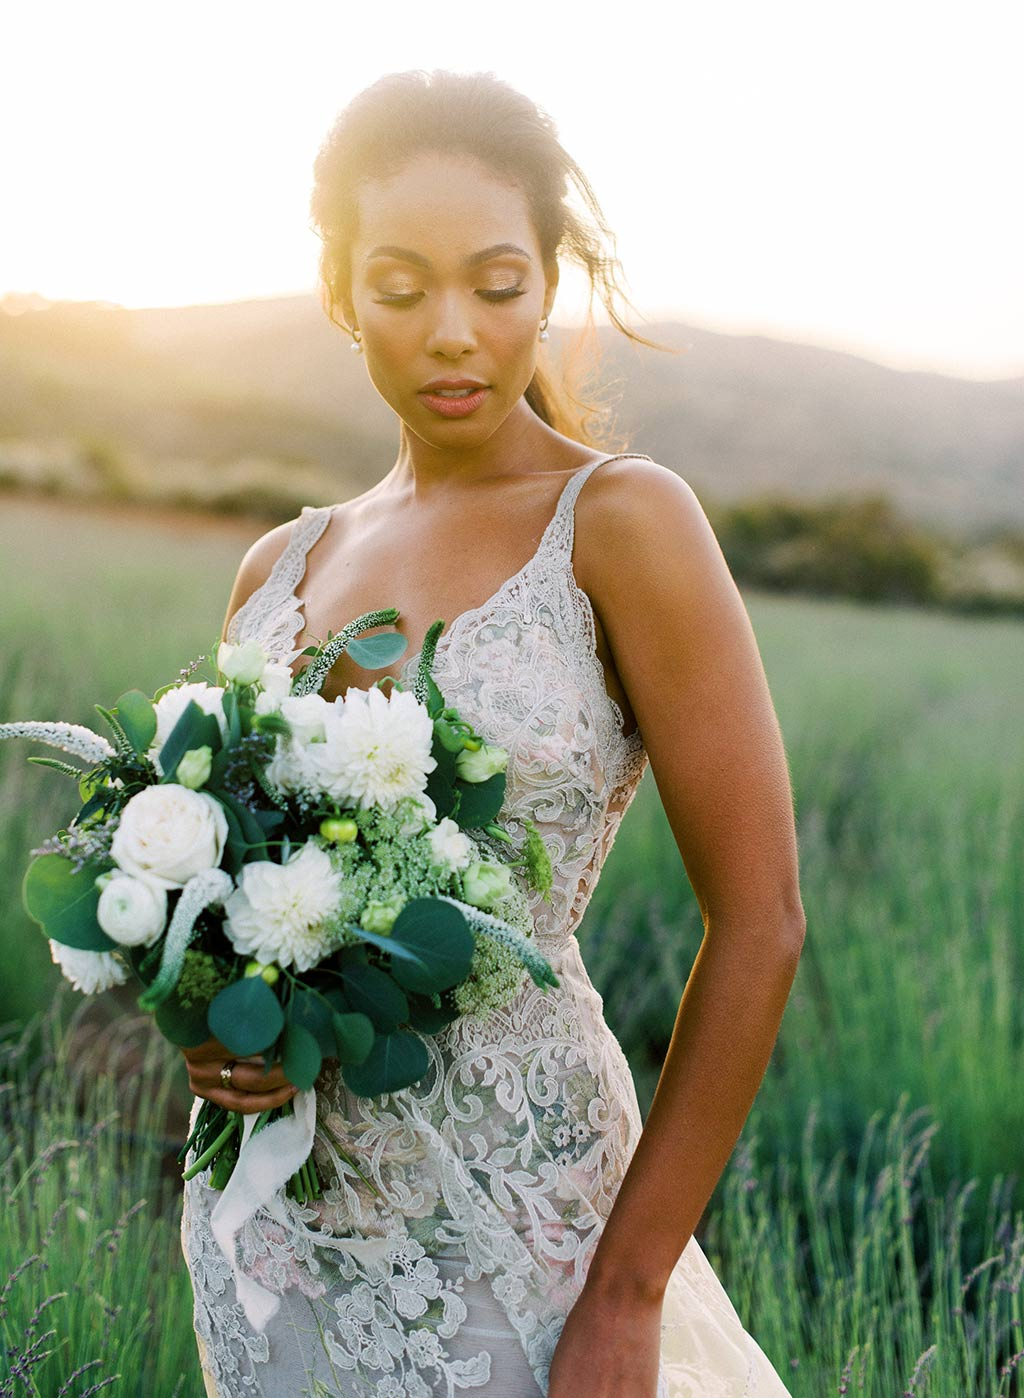 Bride Wearing Wedding Dress  with flowers